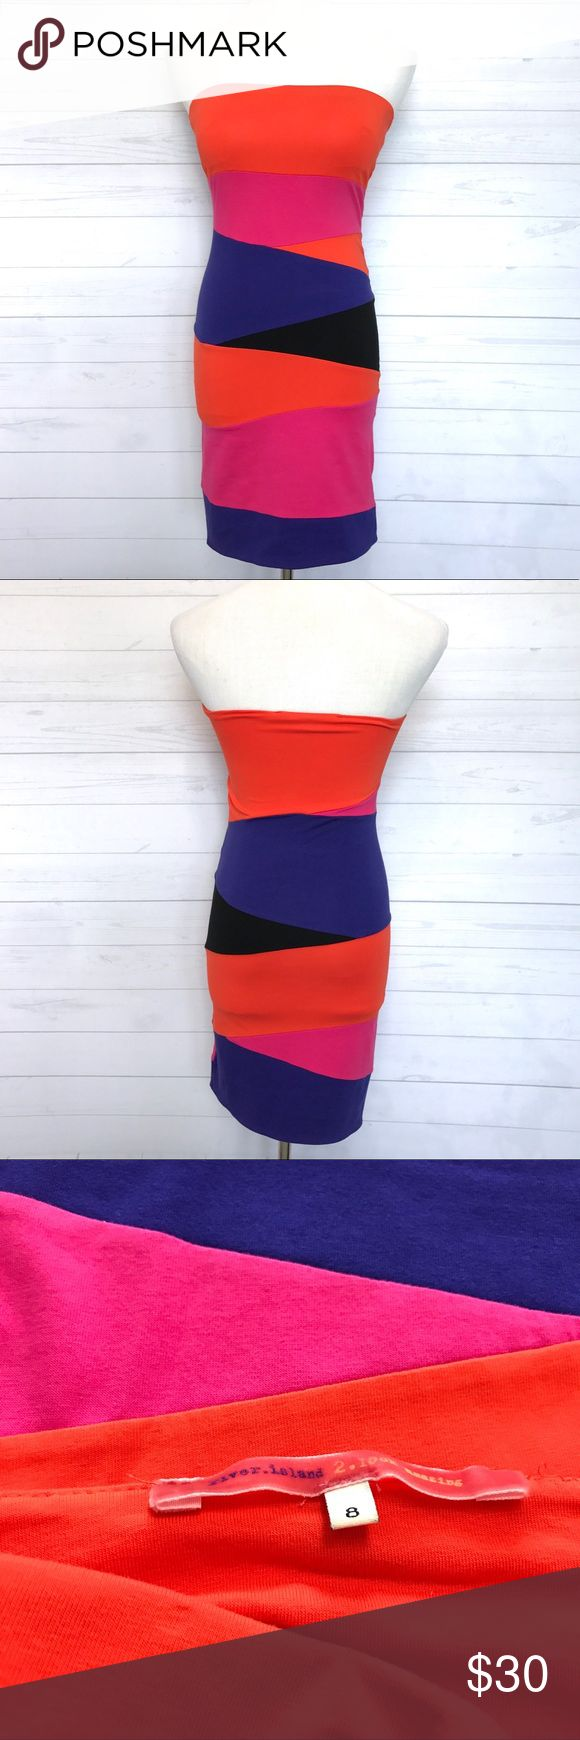 """River Island Triangle Tube Dress Worn once. Still in very good condition. Stretchy. Size 8 US Size 4. Lay Flat Measurement; pit to pit-13"""". Length Approx-27"""". Slightly padded. UK Brand. Color-Orange, Fuchsia, black, purple. No Trades. No low ball offers. *J001 River Island Dresses Strapless"""